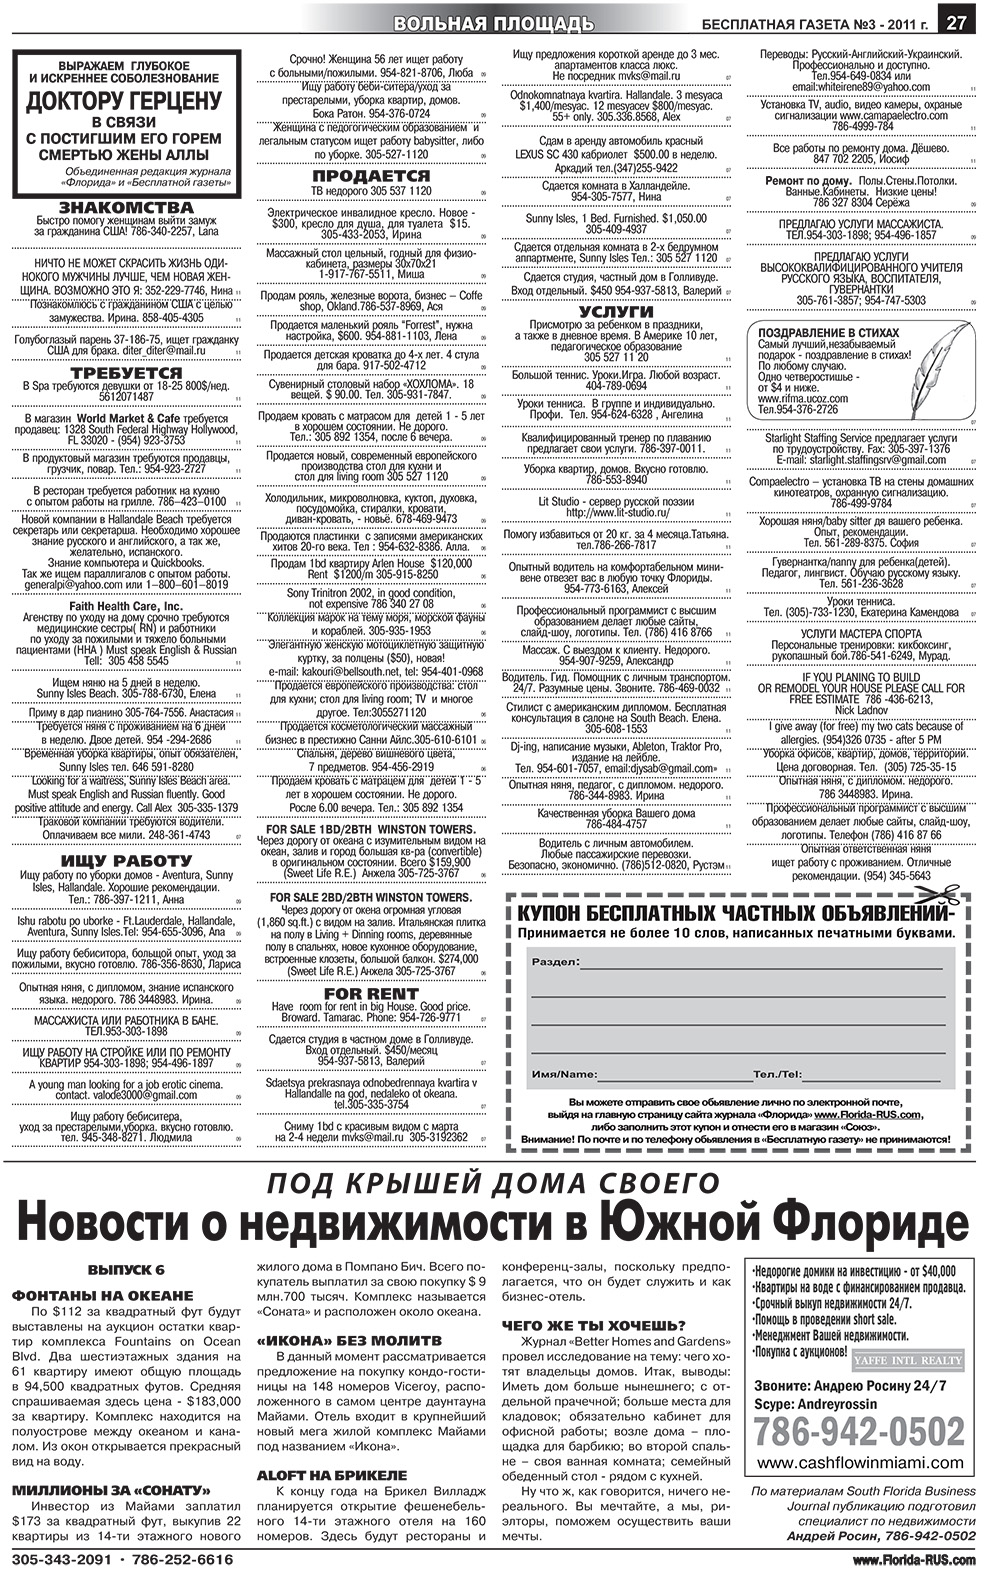 Newspaper advertising 27